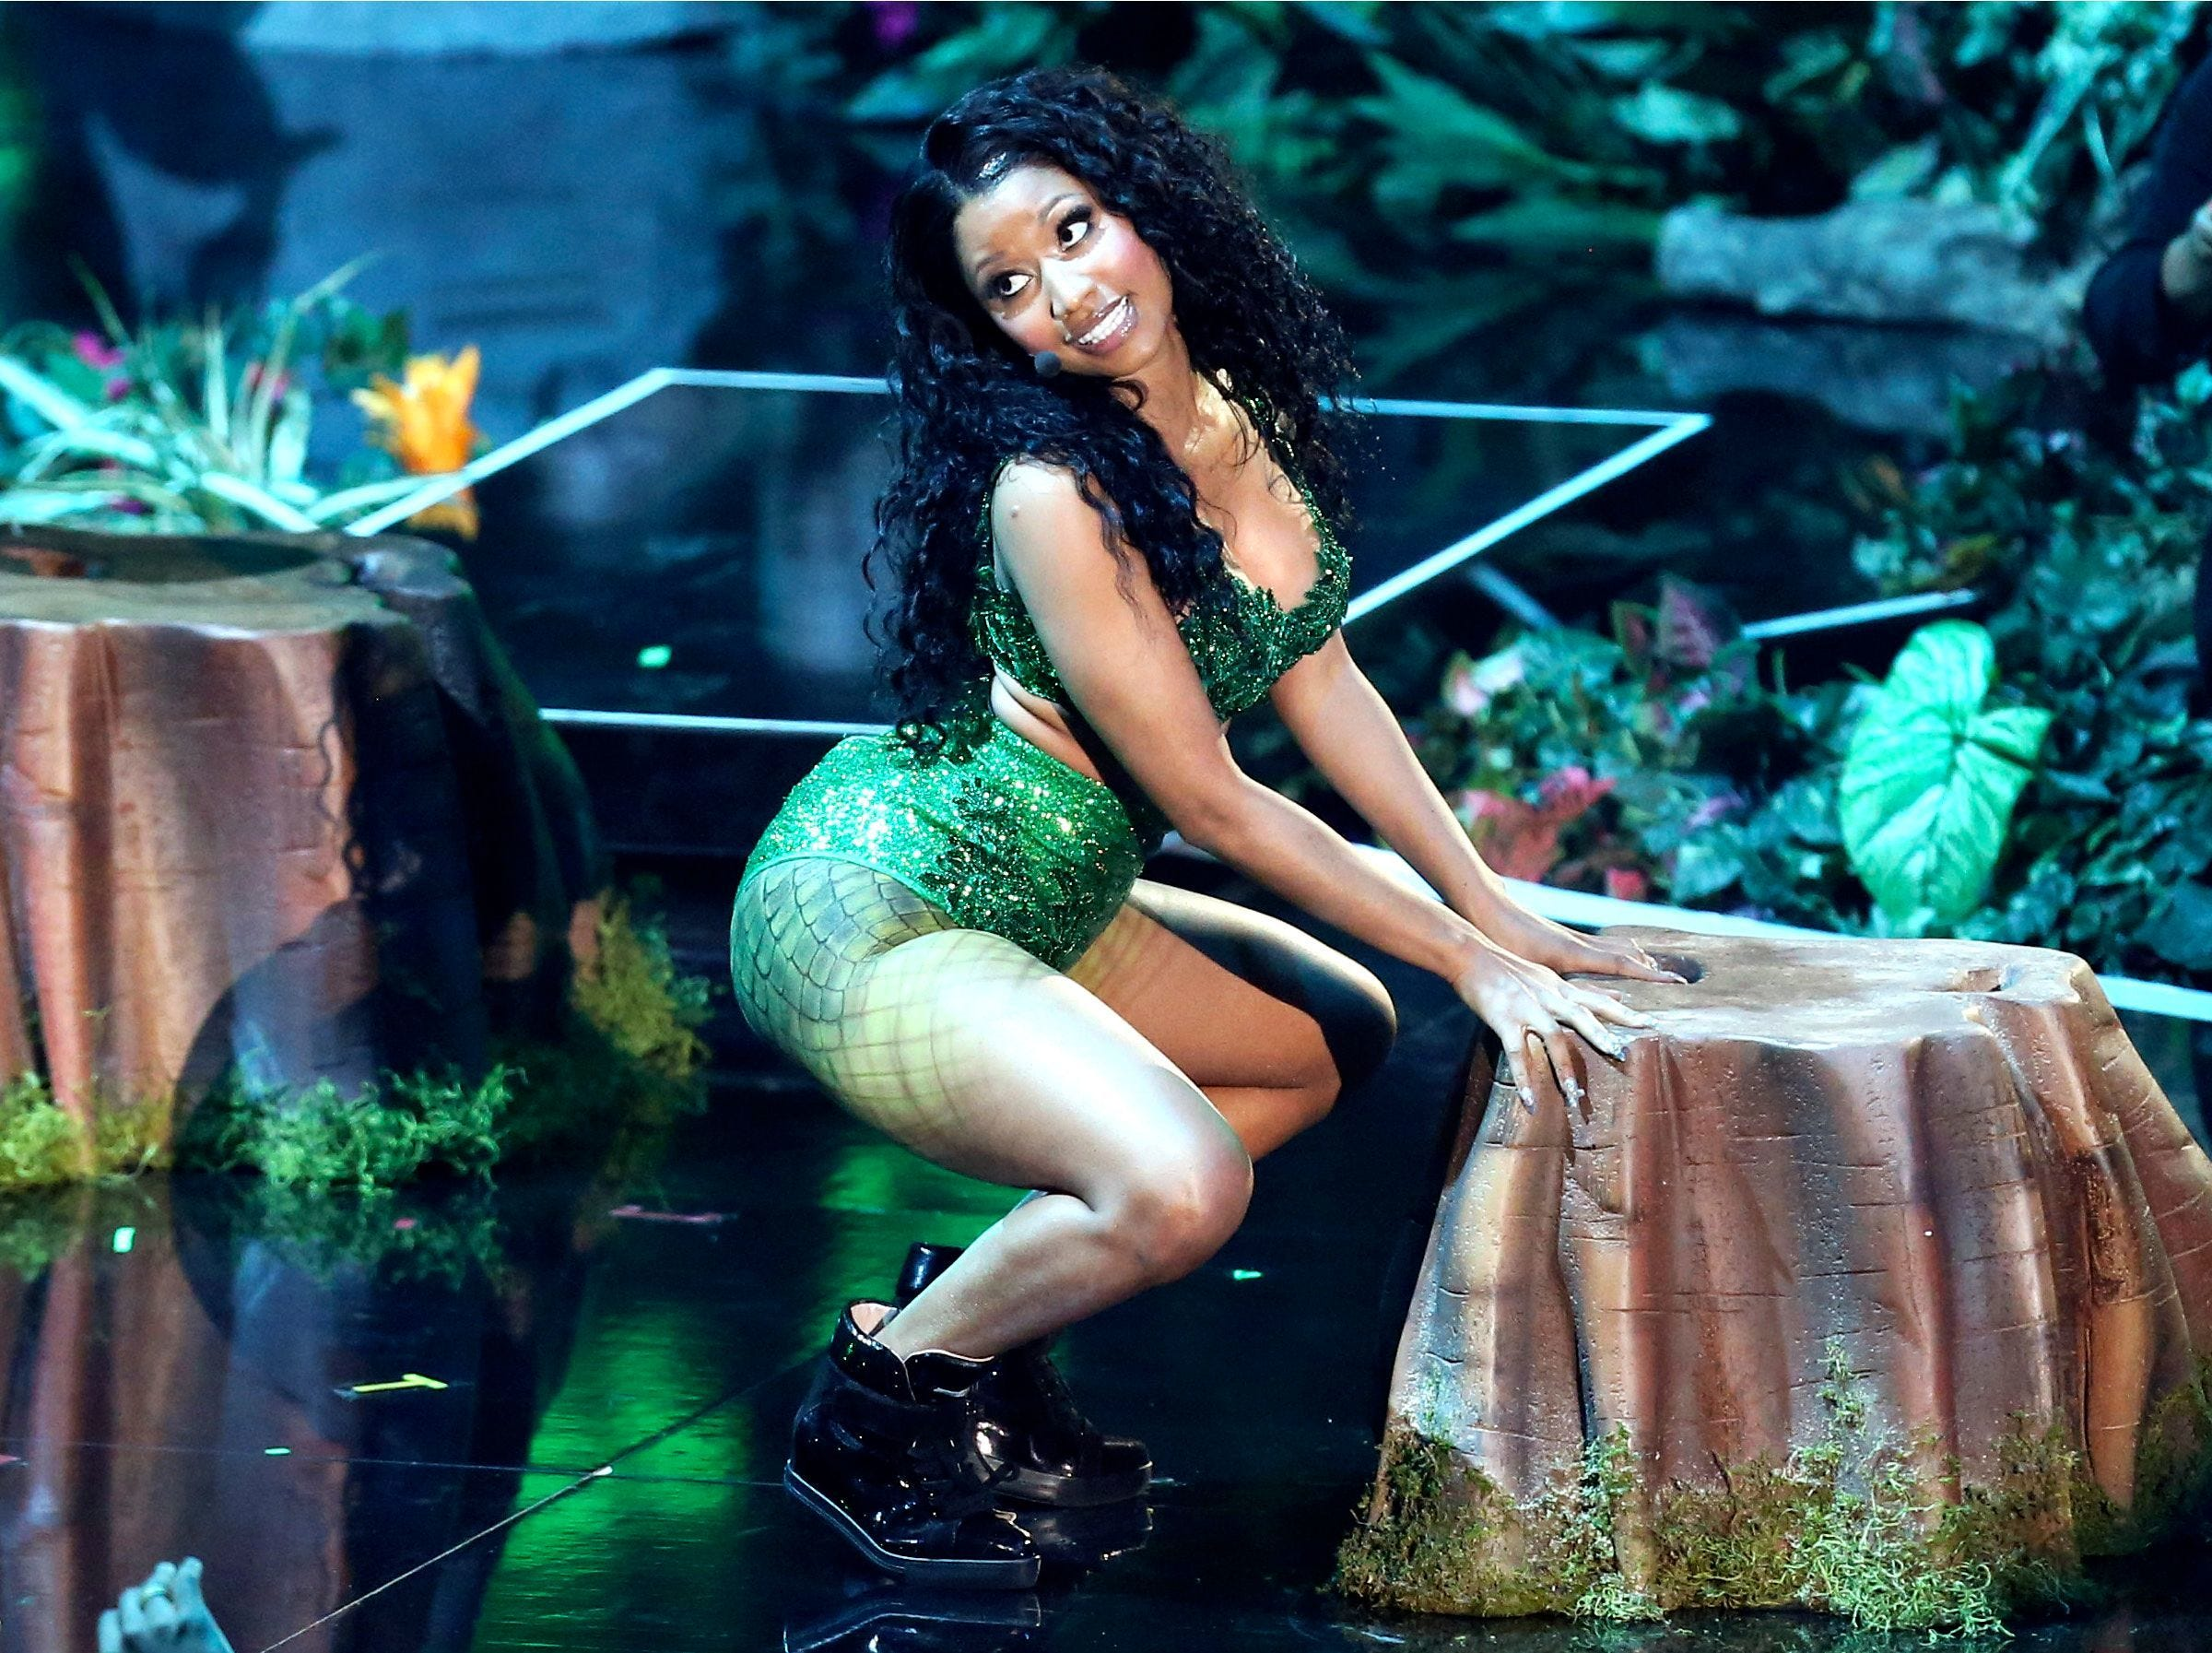 Nicki Minaj performs at the MTV Video Music Awards at The Forum on Sunday, Aug. 24, 2014, in Inglewood, Calif. (Photo by Matt Sayles/Invision/AP) ORG XMIT: CARR136